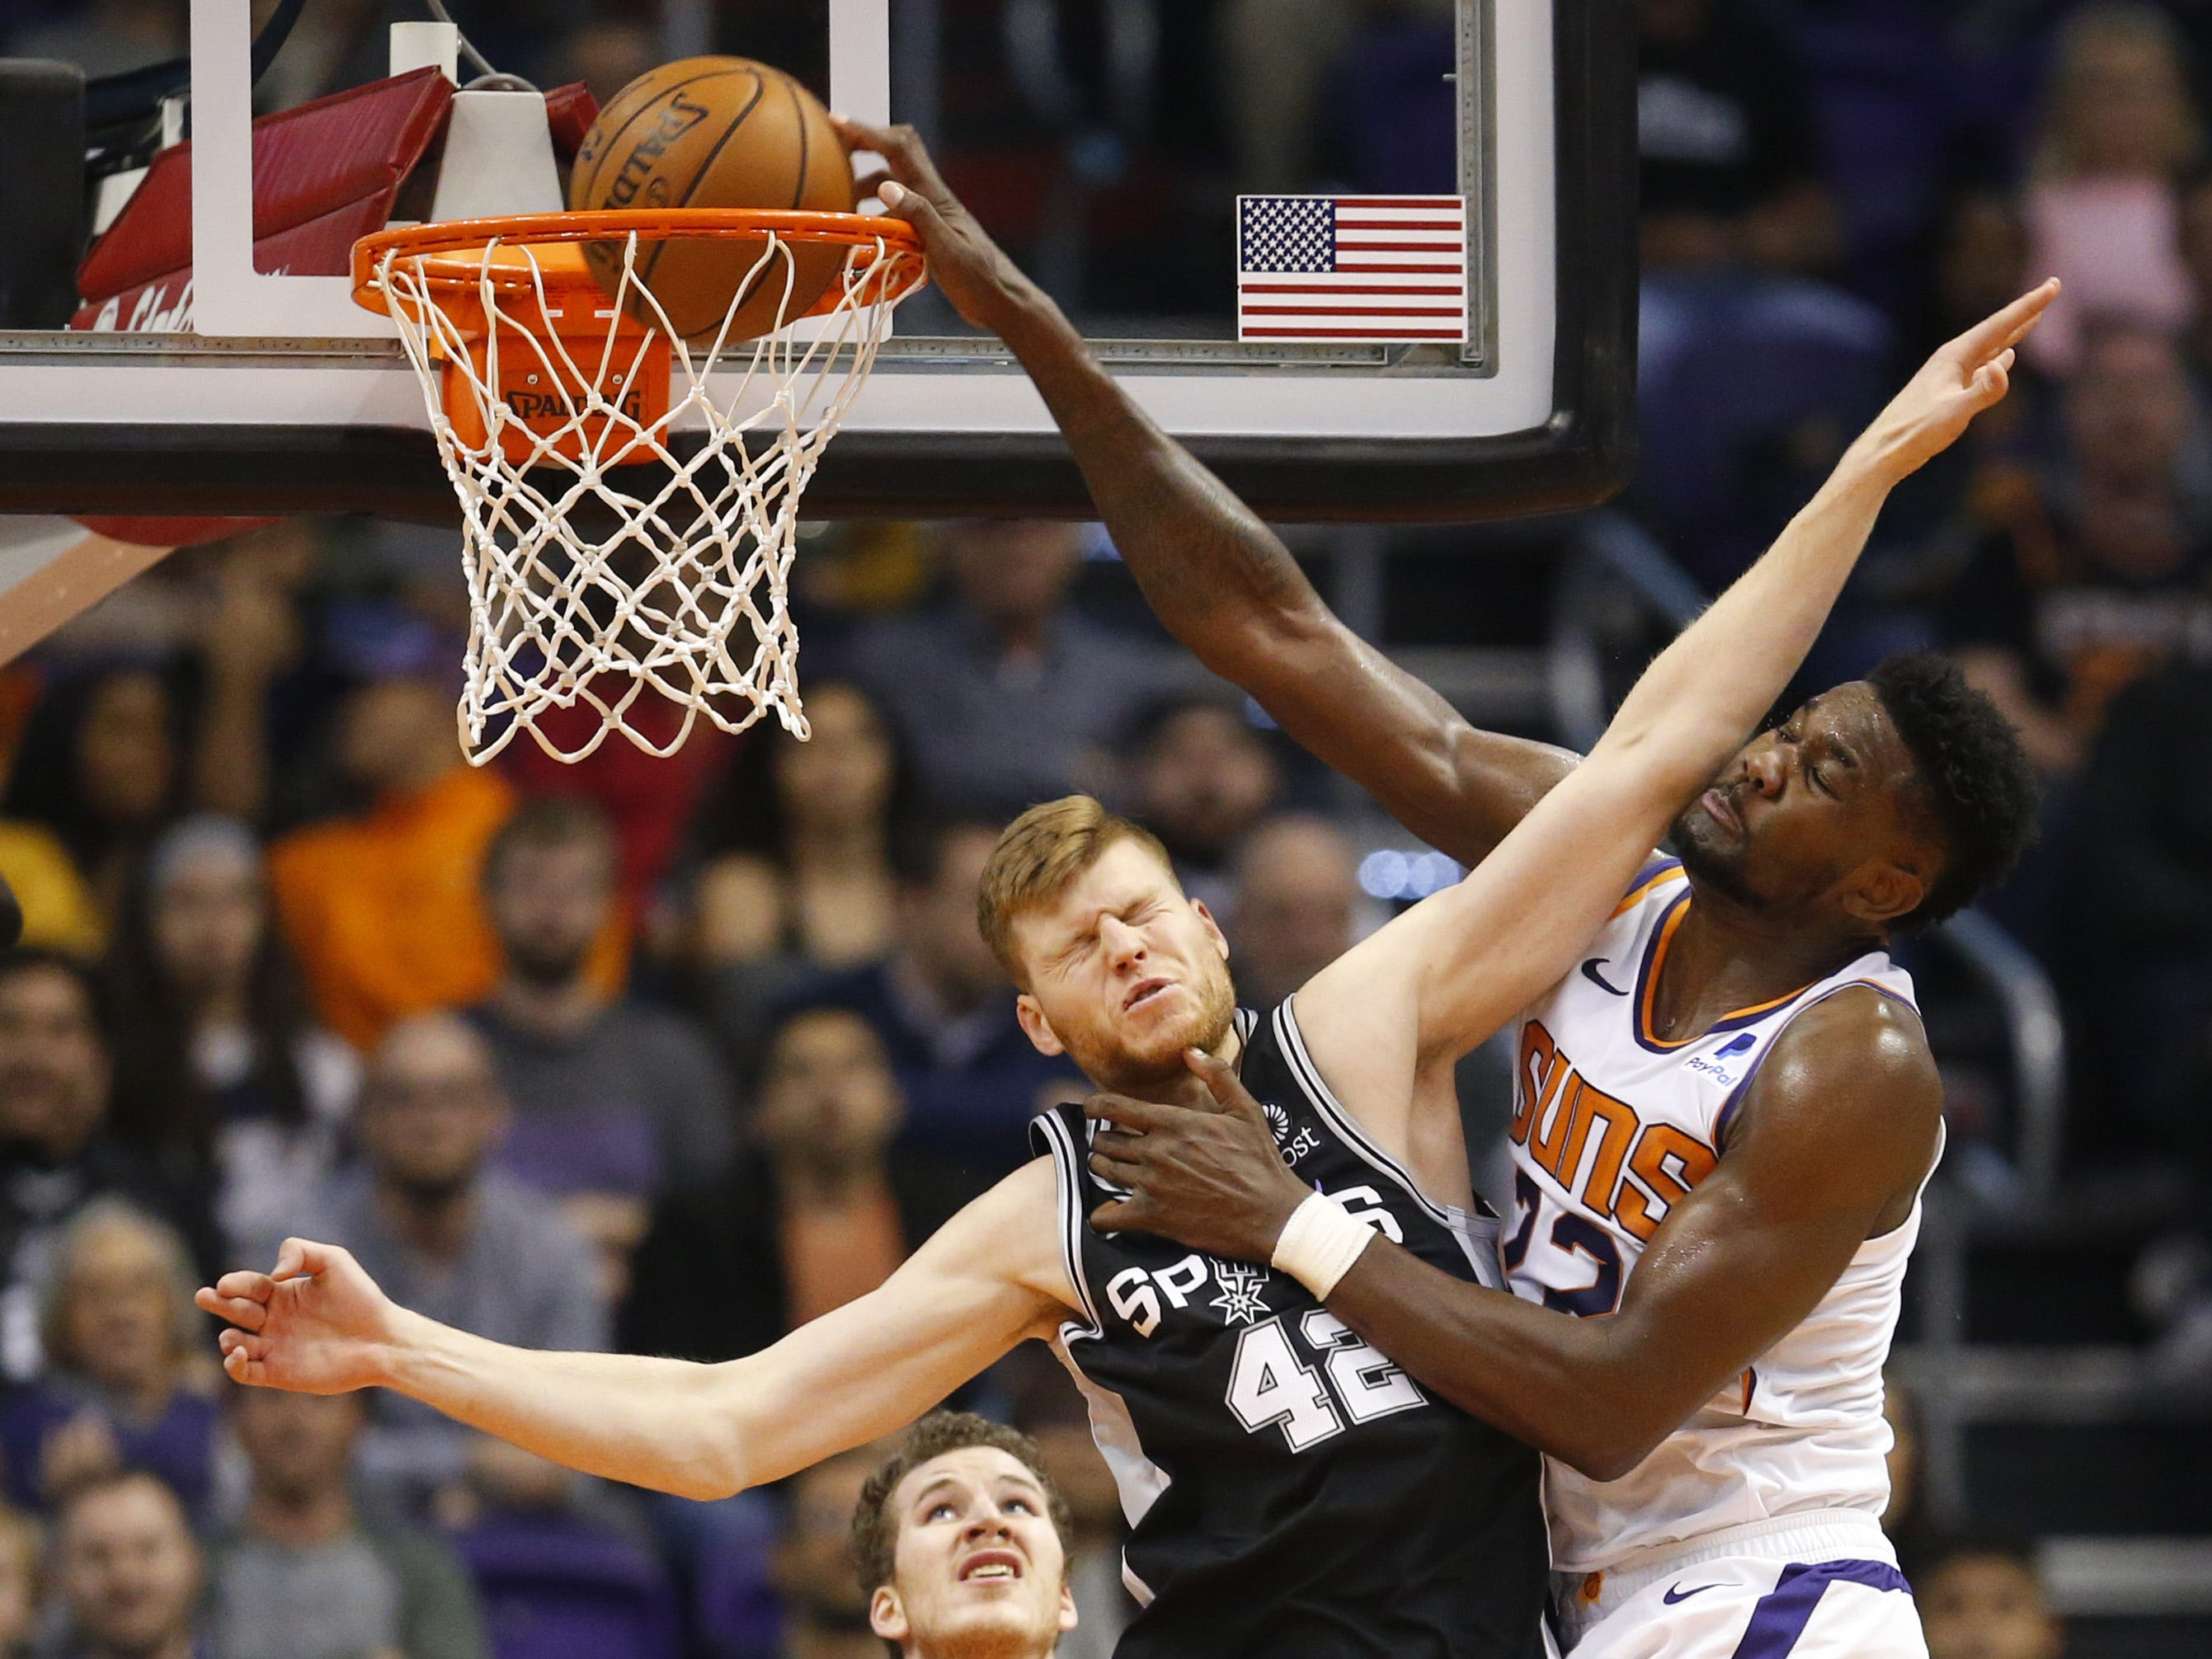 Phoenix Suns center Deandre Ayton (22) is fouled by San Antonio Spurs forward Davis Bertans (42) while making a basket during a NBA game at Talking Stick Arena in Phoenix on November 14.